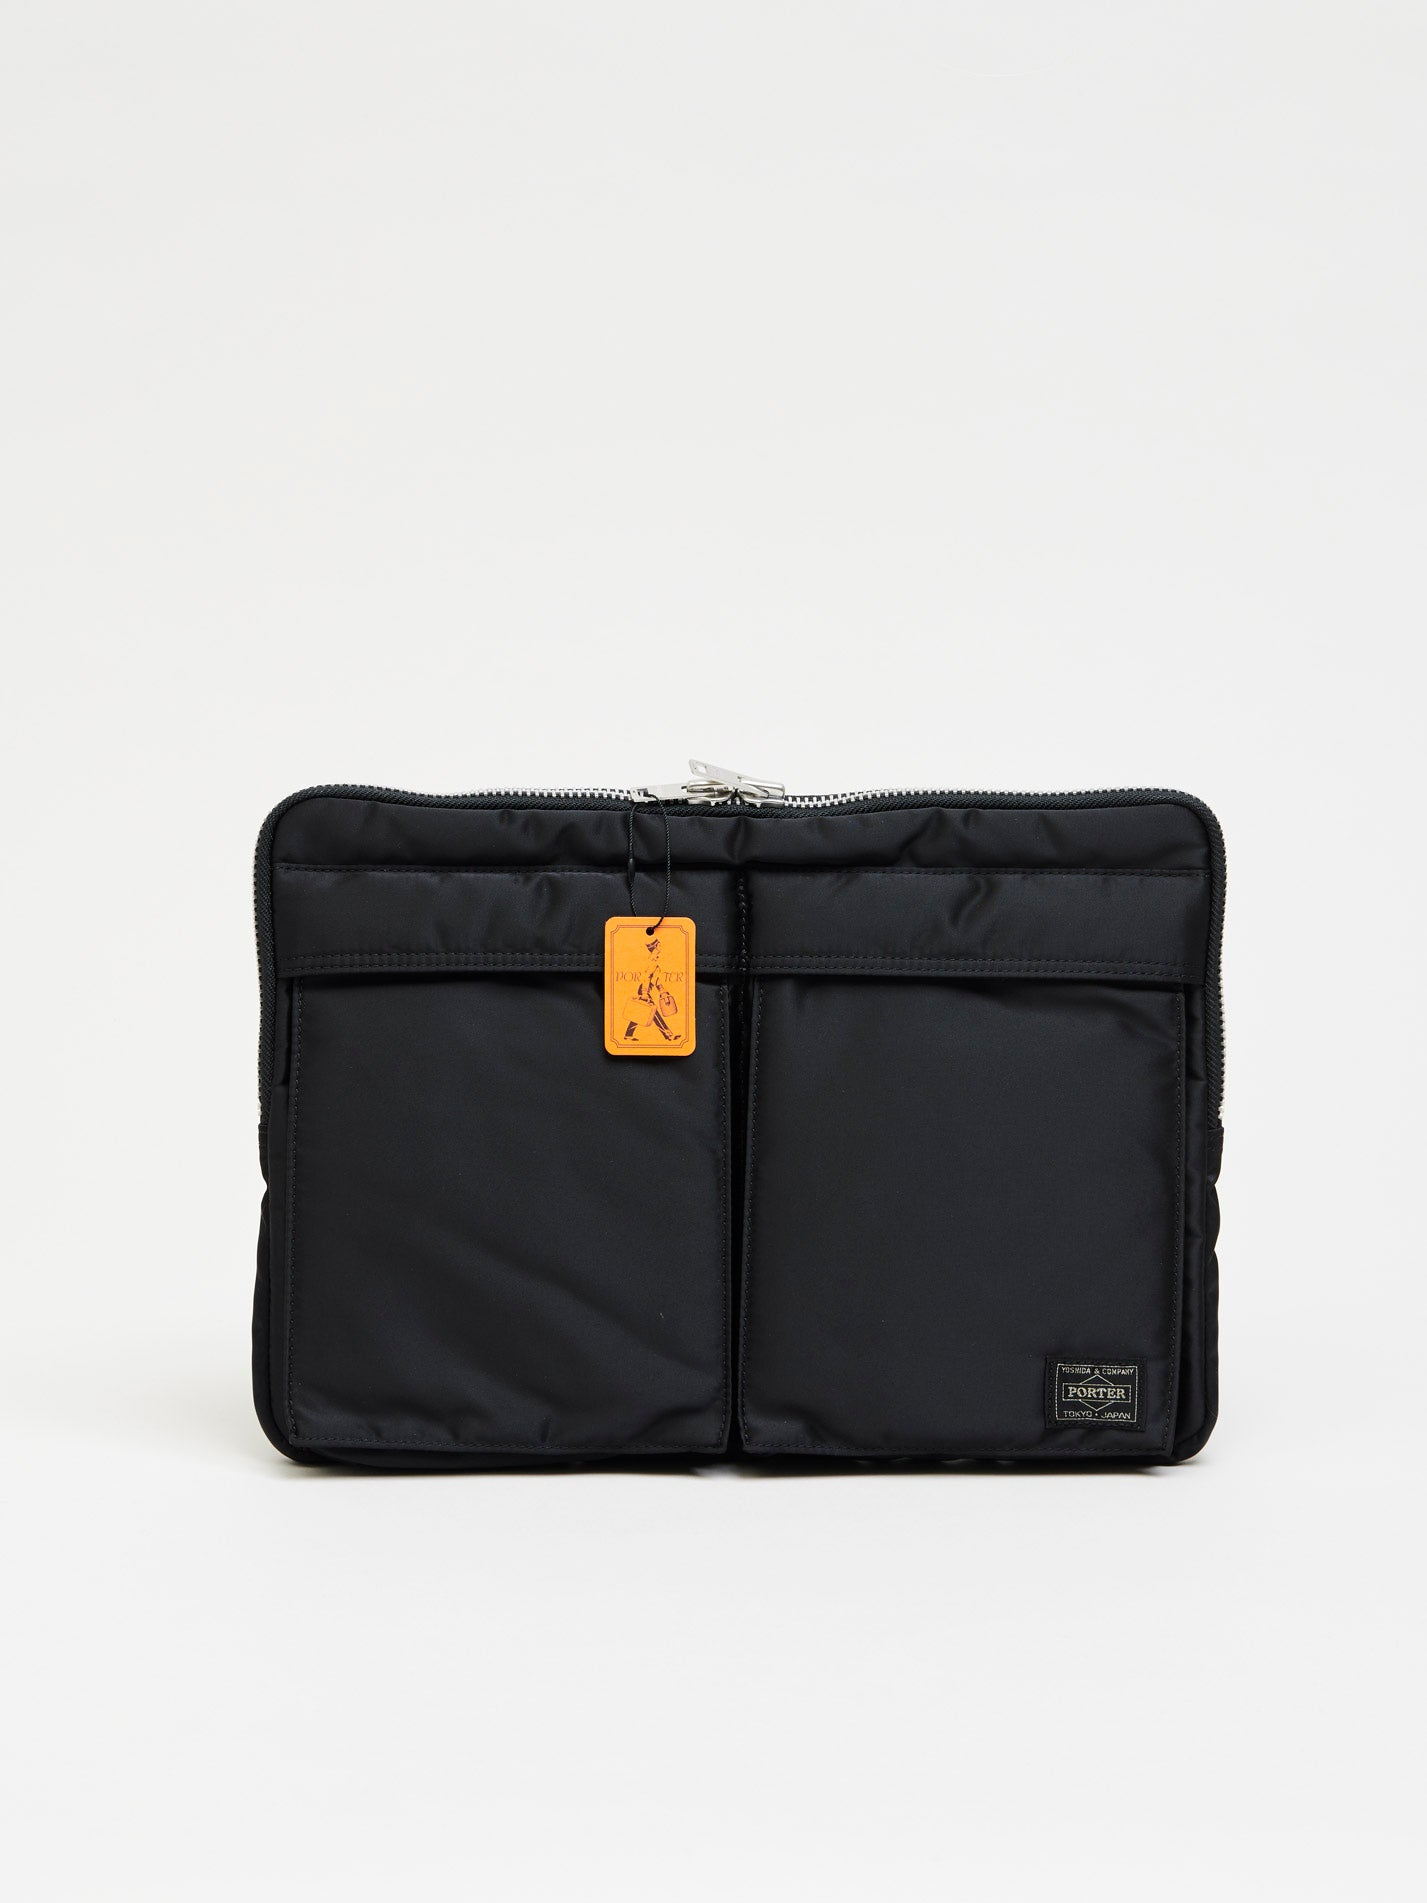 Tanker Document Case, Black